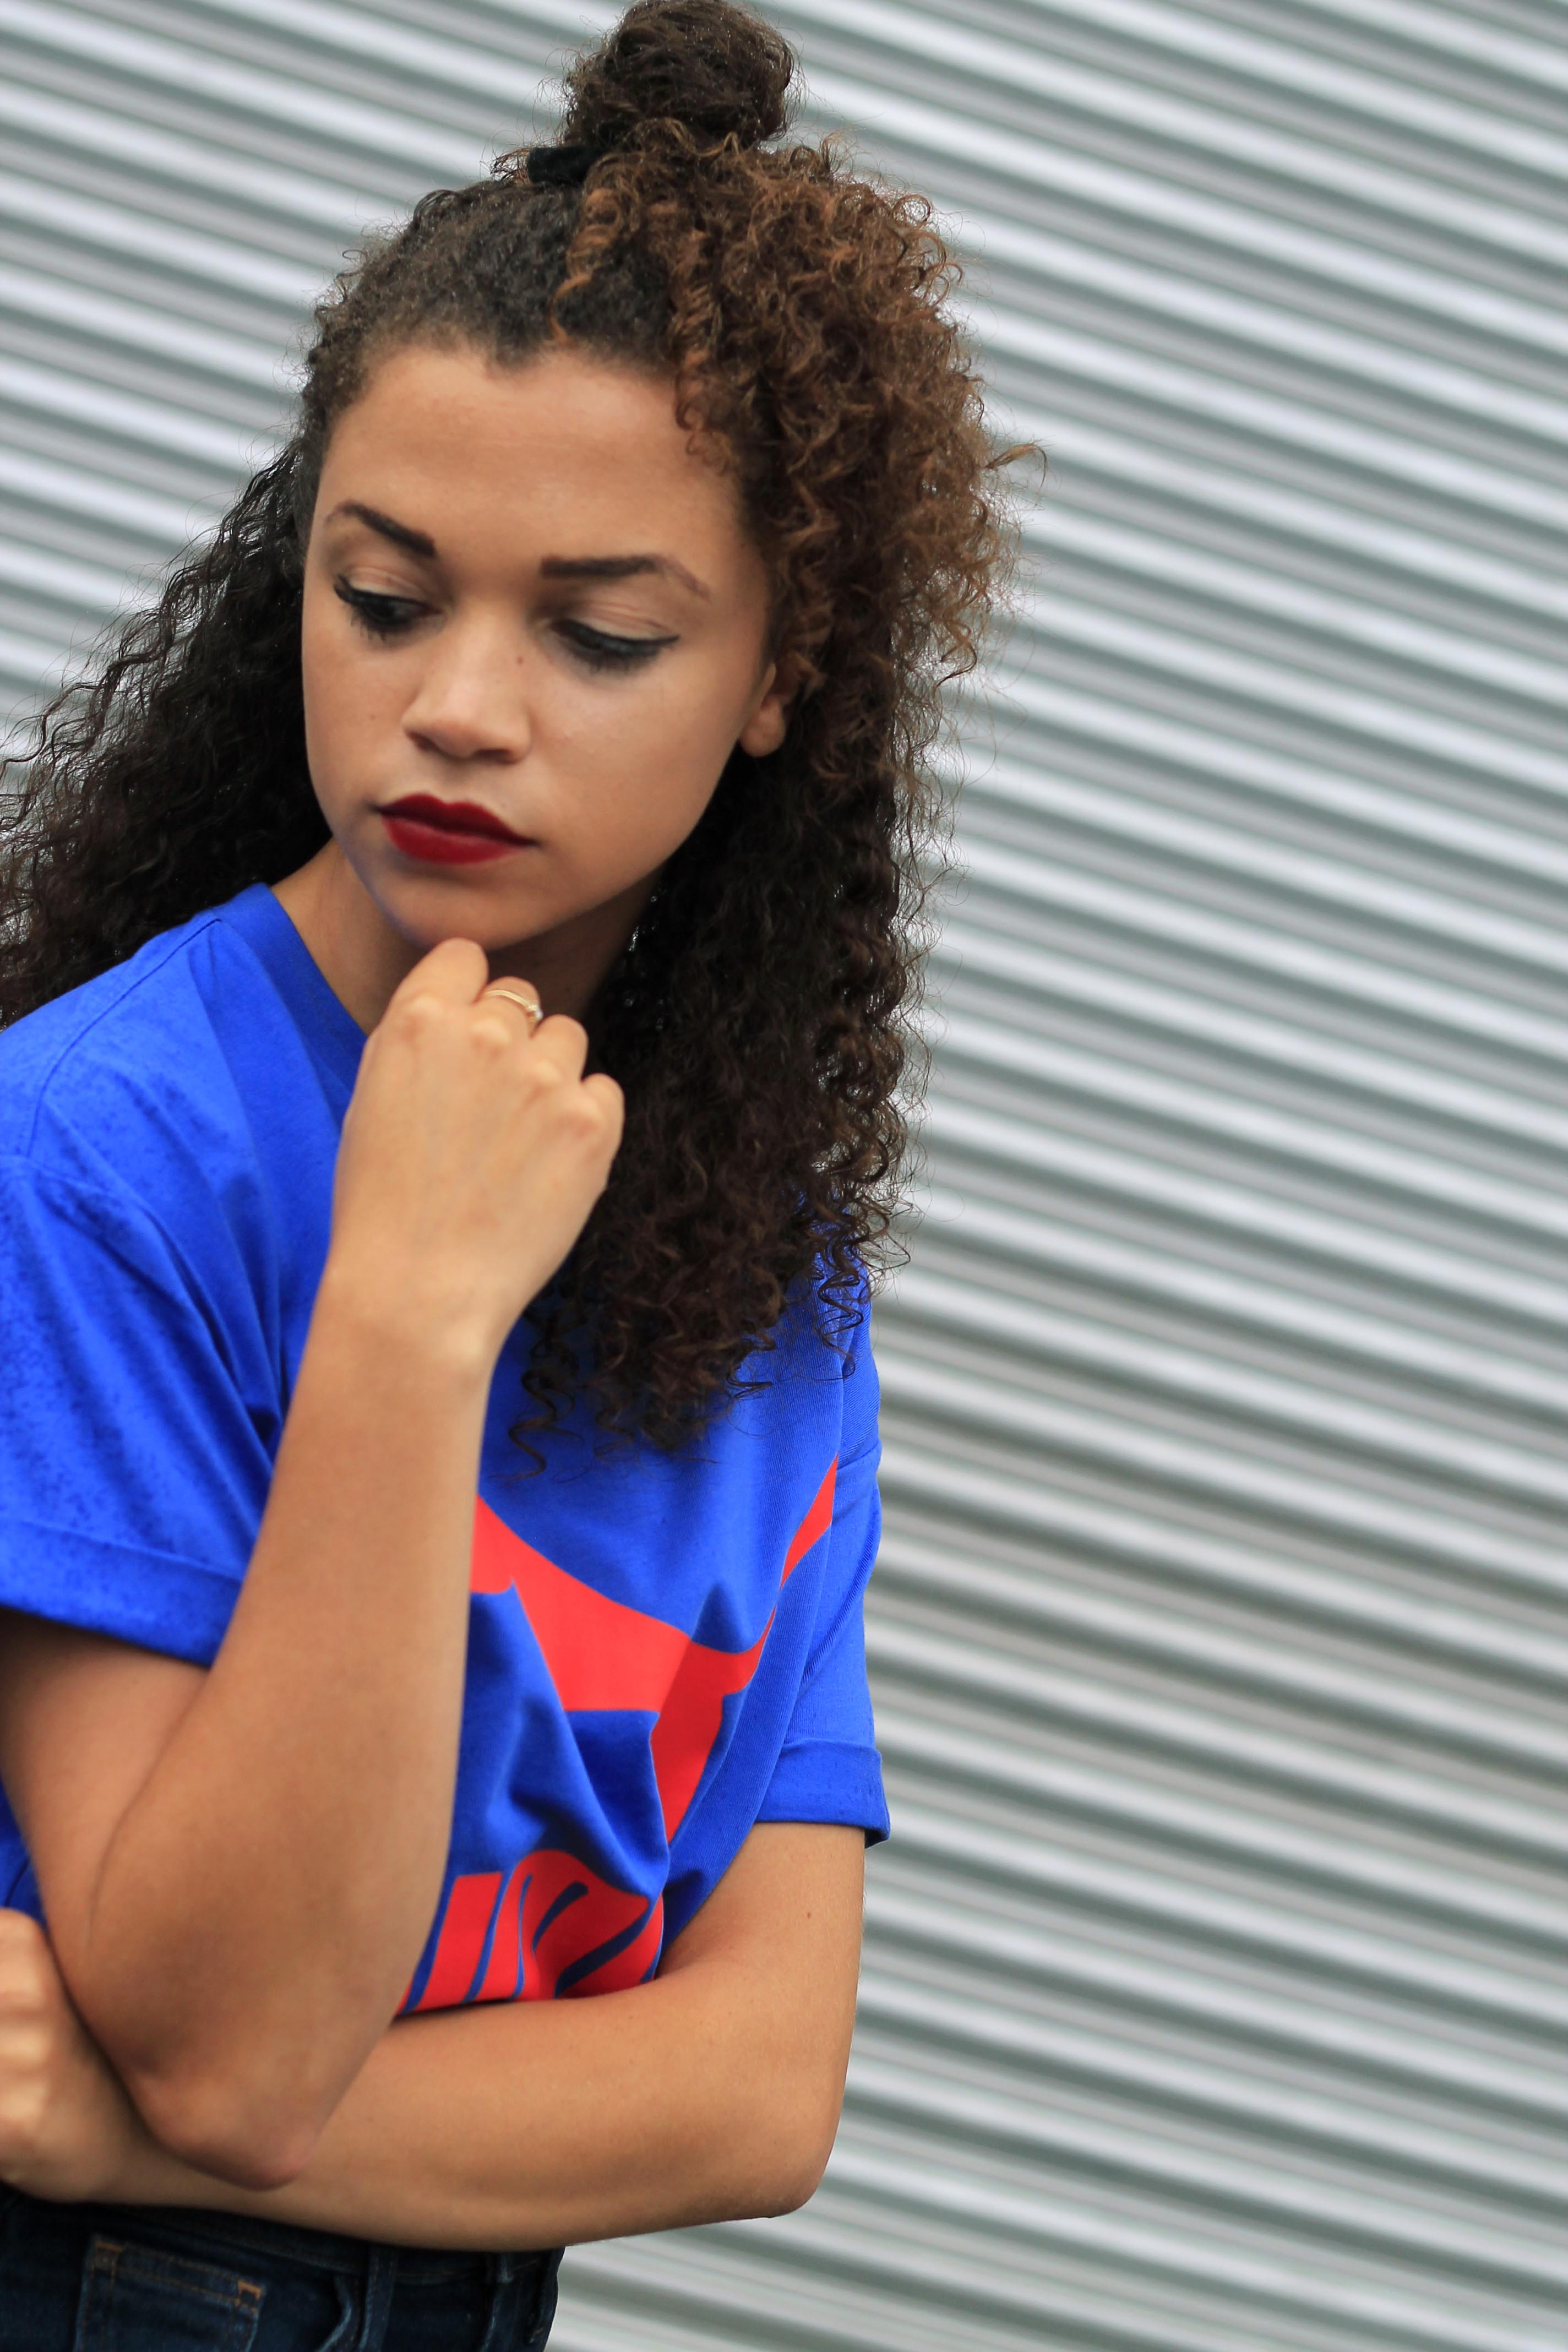 uk curly hair blogger - retro puma tshirt 5